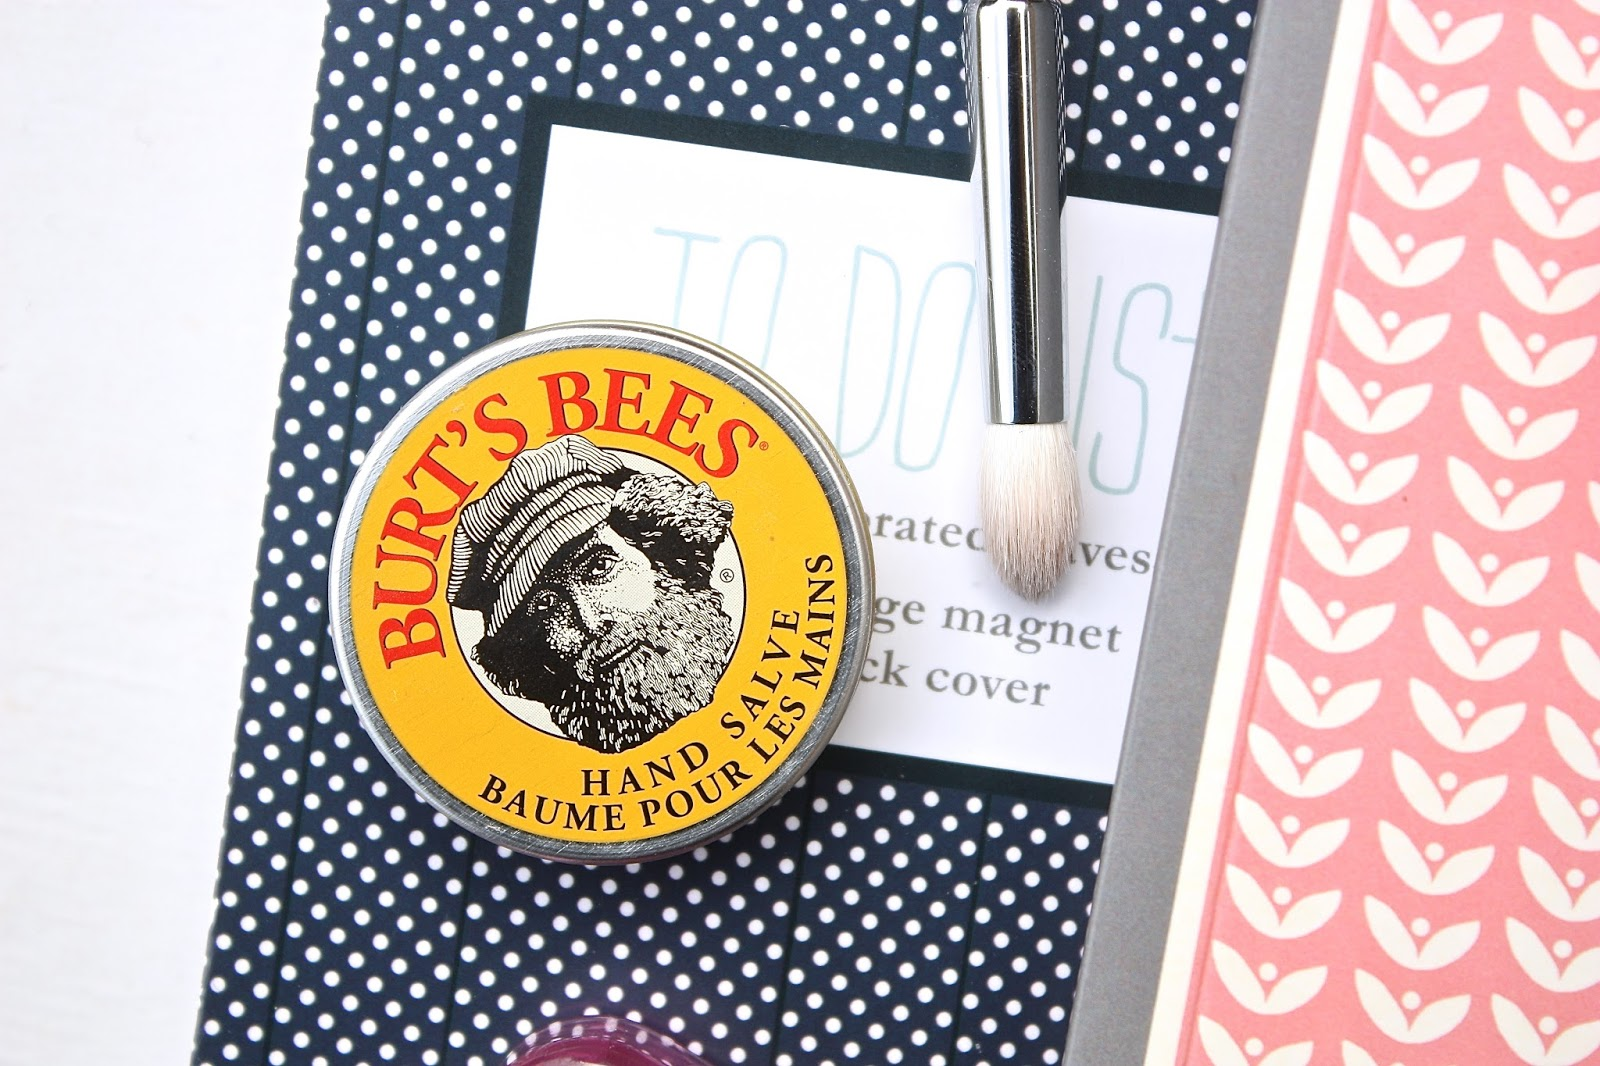 Burts Bees Hand Balm Review